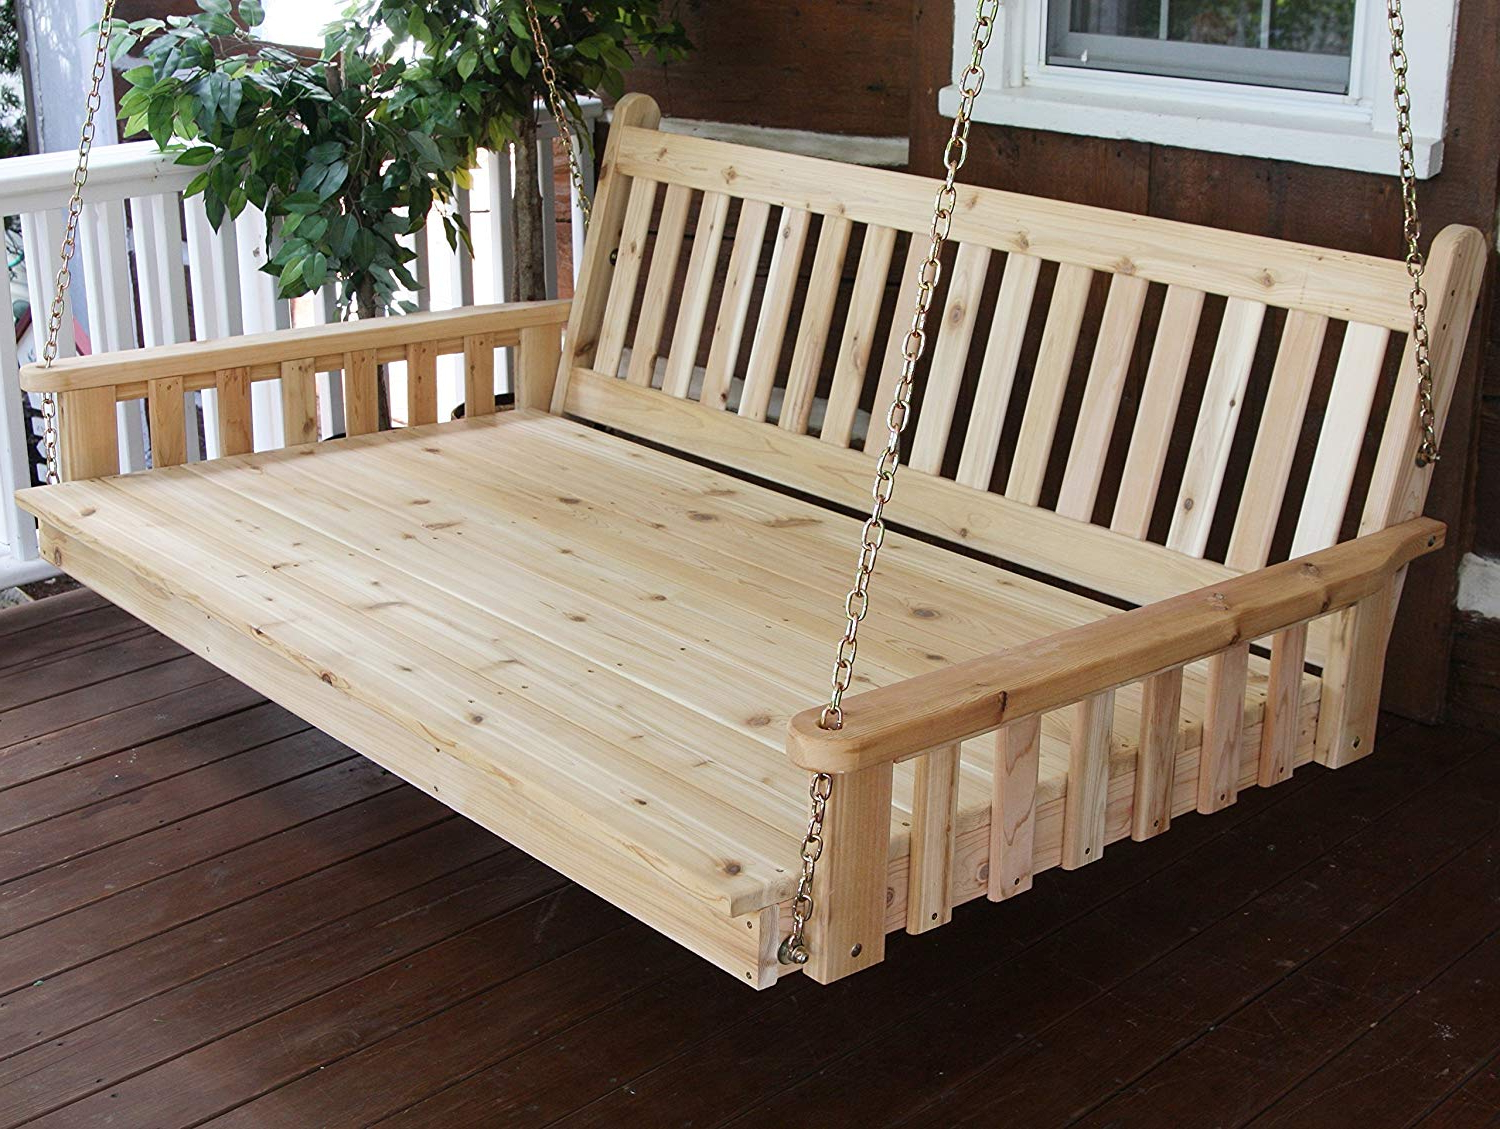 Most Recently Released Best Hanging Porch Swing Bed Swingbed, 6' Cedar Swinging Daybed For  Relaxing Moments, Fun 3 Person Seating For Patio Porches Pergola Furniture, Inside Country Style Hanging Daybed Swings (Gallery 26 of 30)